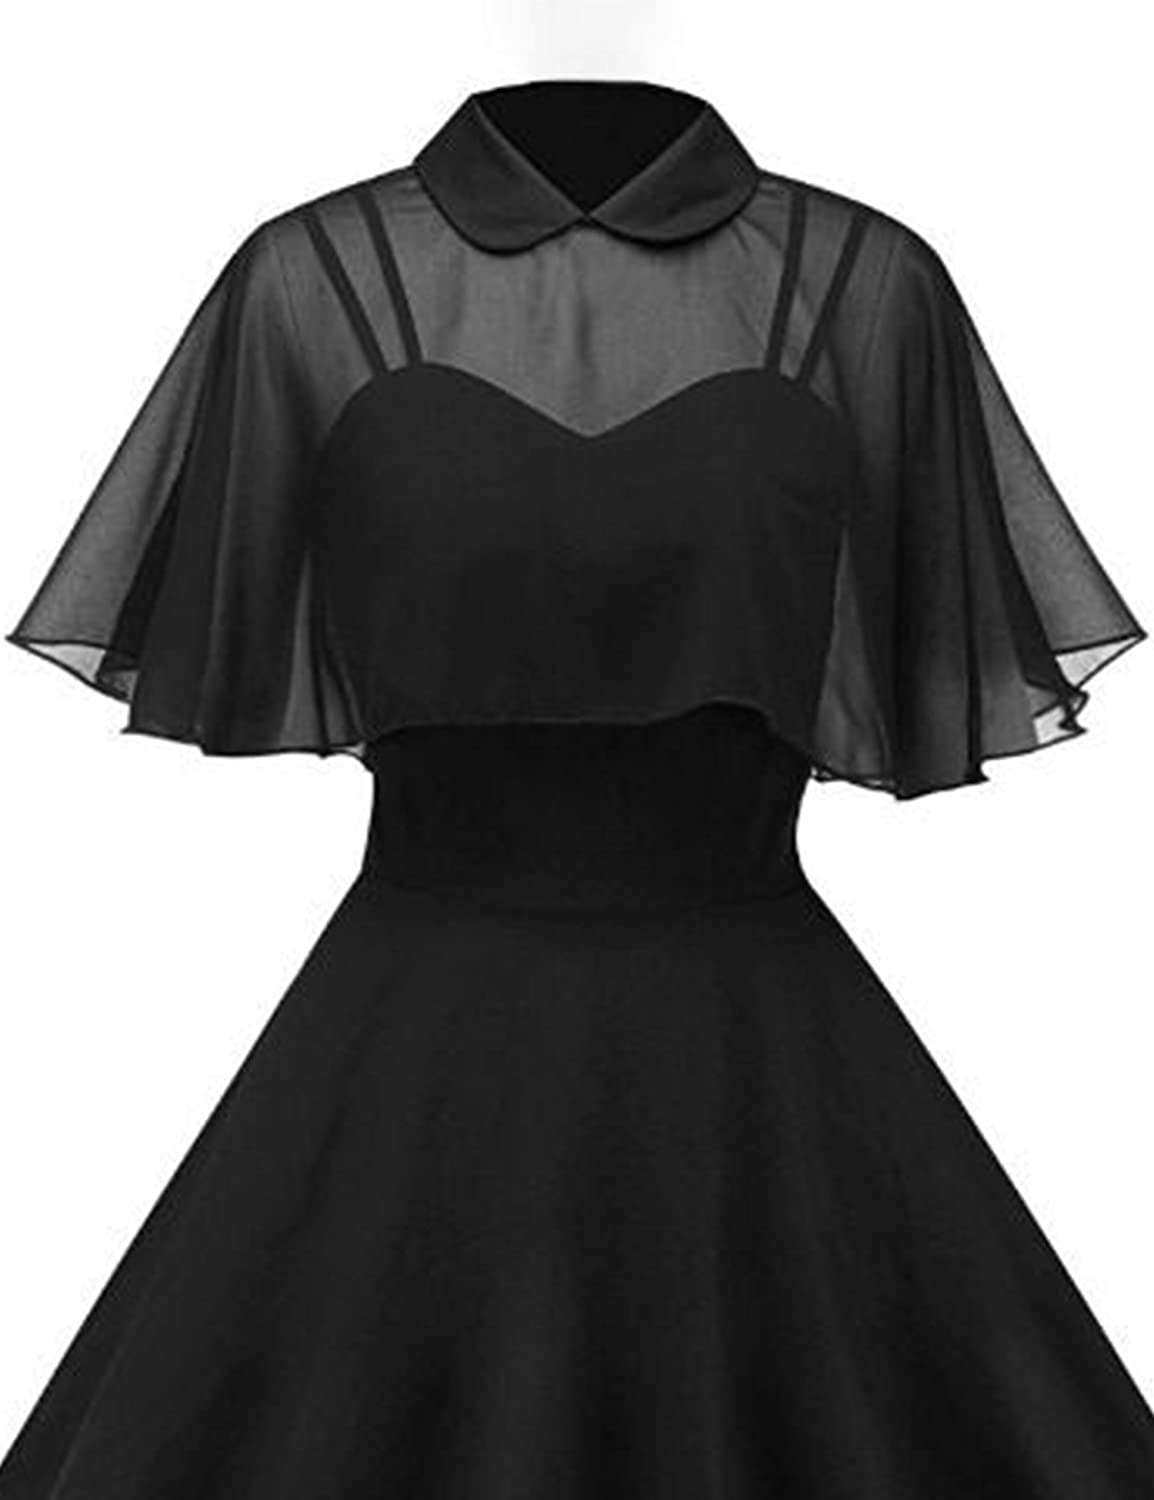 GownTown Womens 1950s Cloak Two-Piece Cocktail Dress